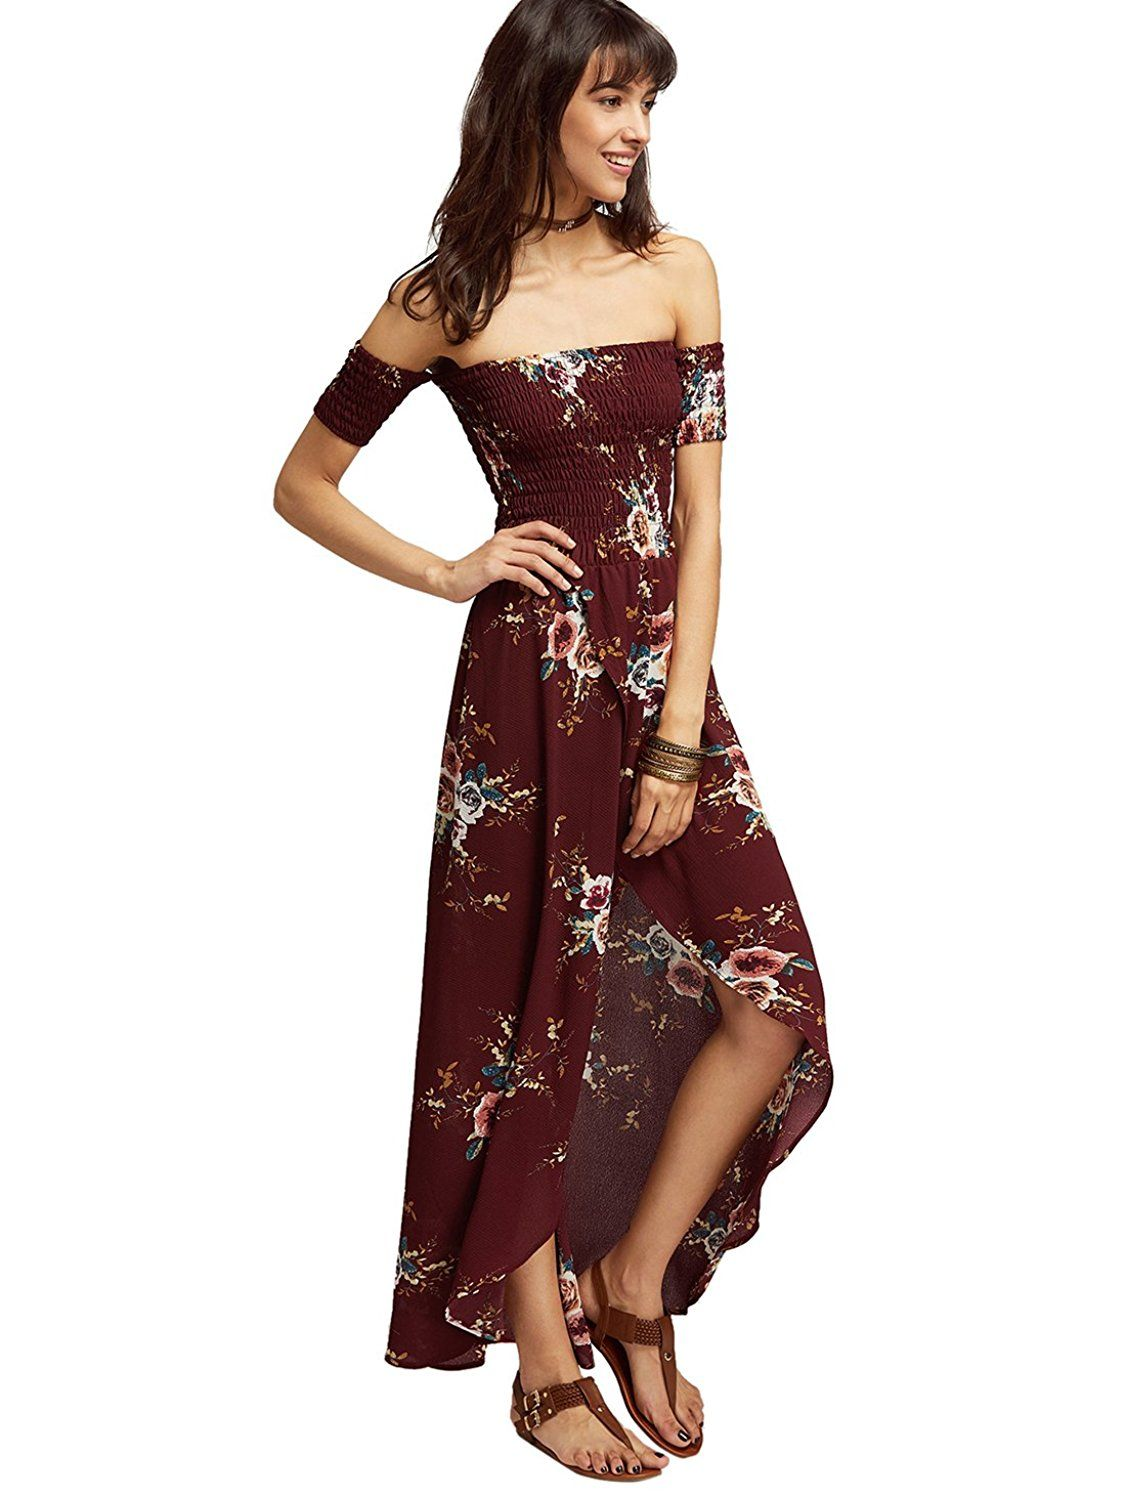 1a8eeb5e2f14 Romwe Women s Off Shoulder Floral Casual Short Sleeve Split Beach Maxi  Dress Burgundy M at Amazon Women s Clothing store